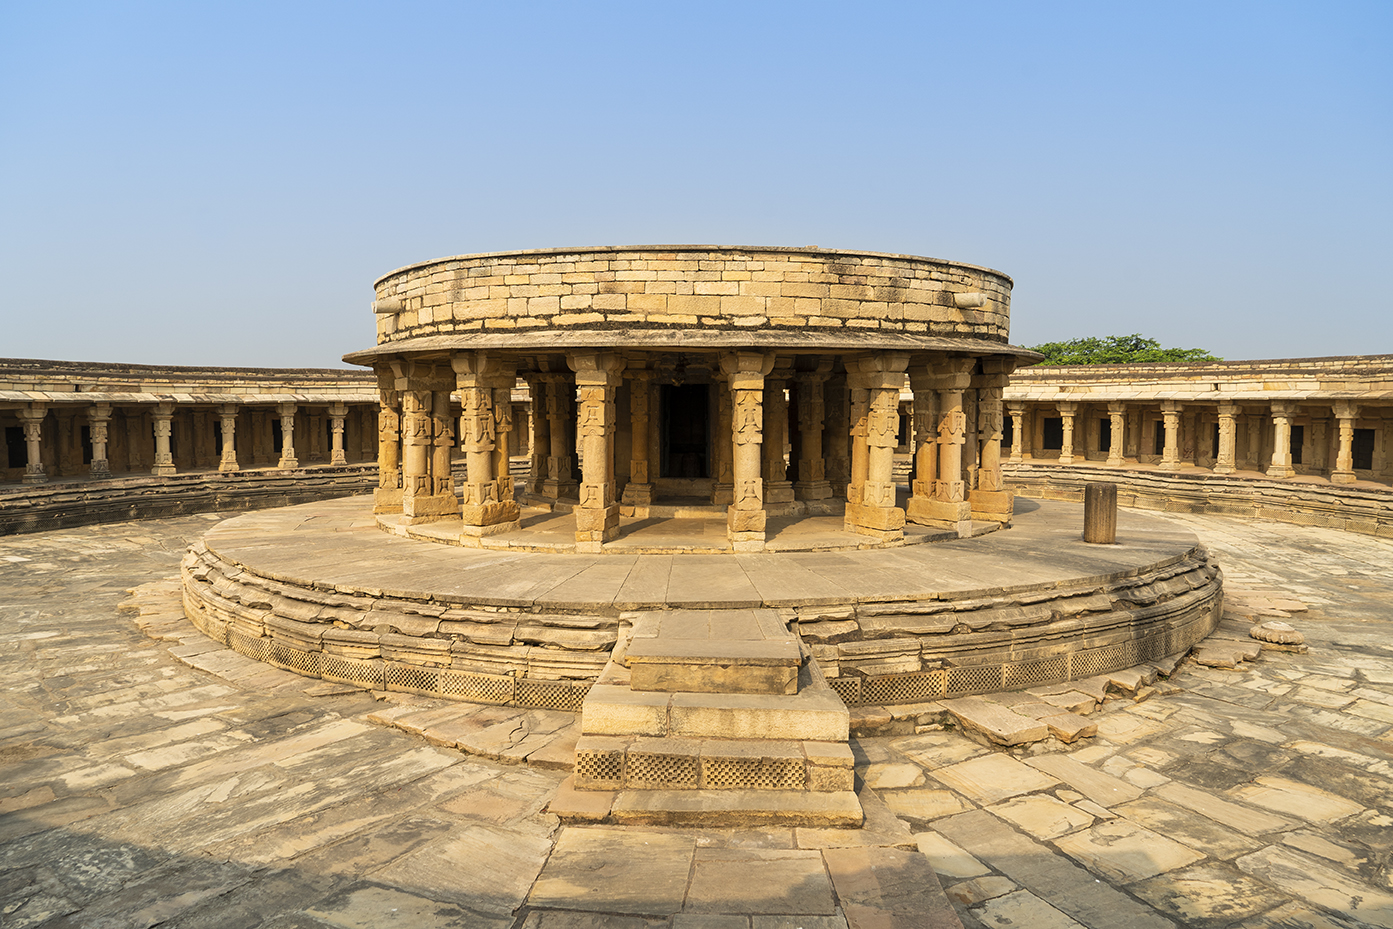 The inner courtyard of Chausath Yogini temple with the central sanatorium dedicated to Shiva